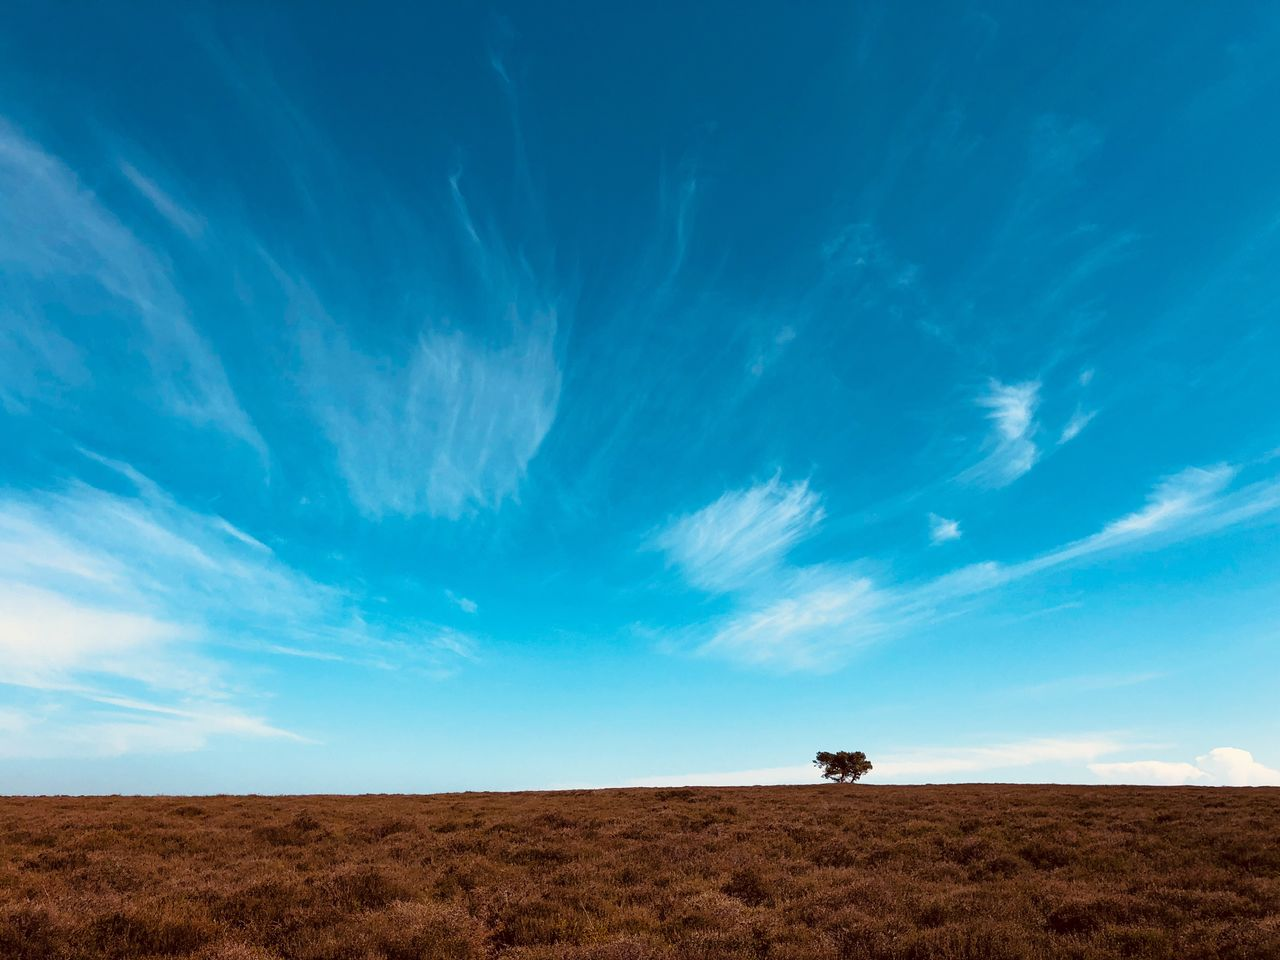 sky, cloud - sky, landscape, land, environment, blue, beauty in nature, nature, scenics - nature, horizon over land, horizon, field, mammal, animal, animal themes, tranquil scene, non-urban scene, tranquility, day, domestic animals, no people, arid climate